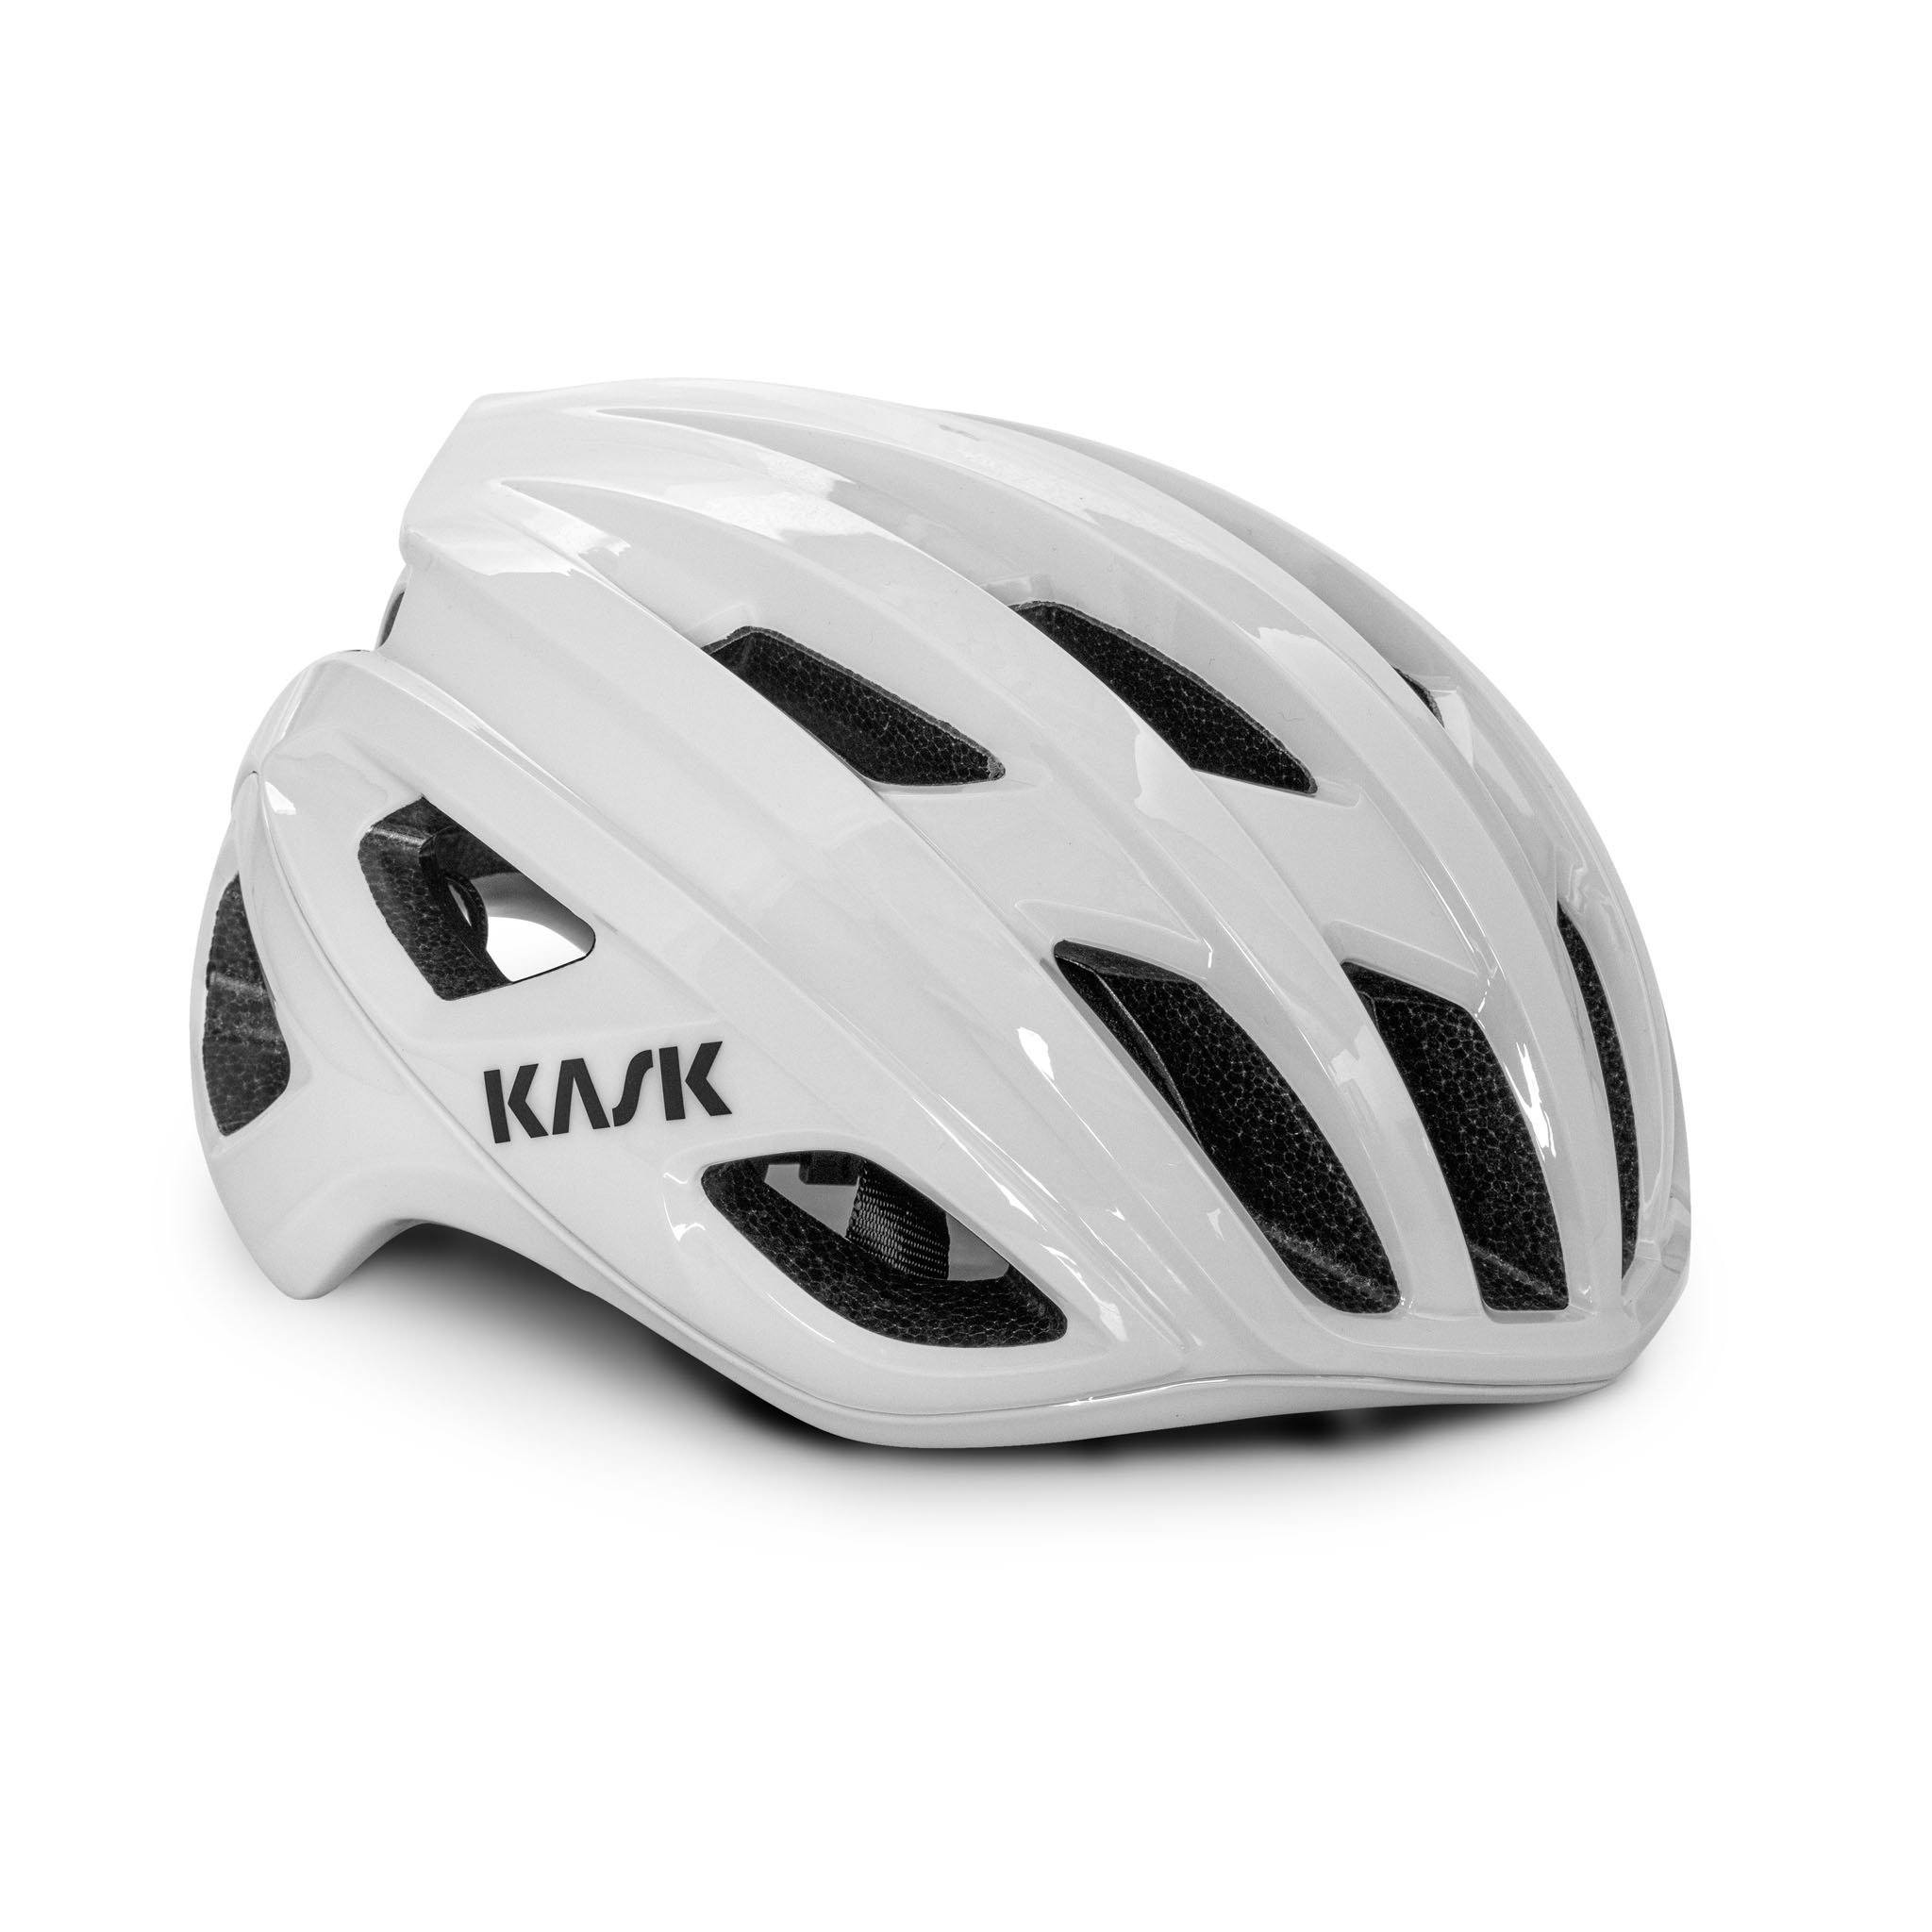 Kask Mojito Cubed - White KASK S